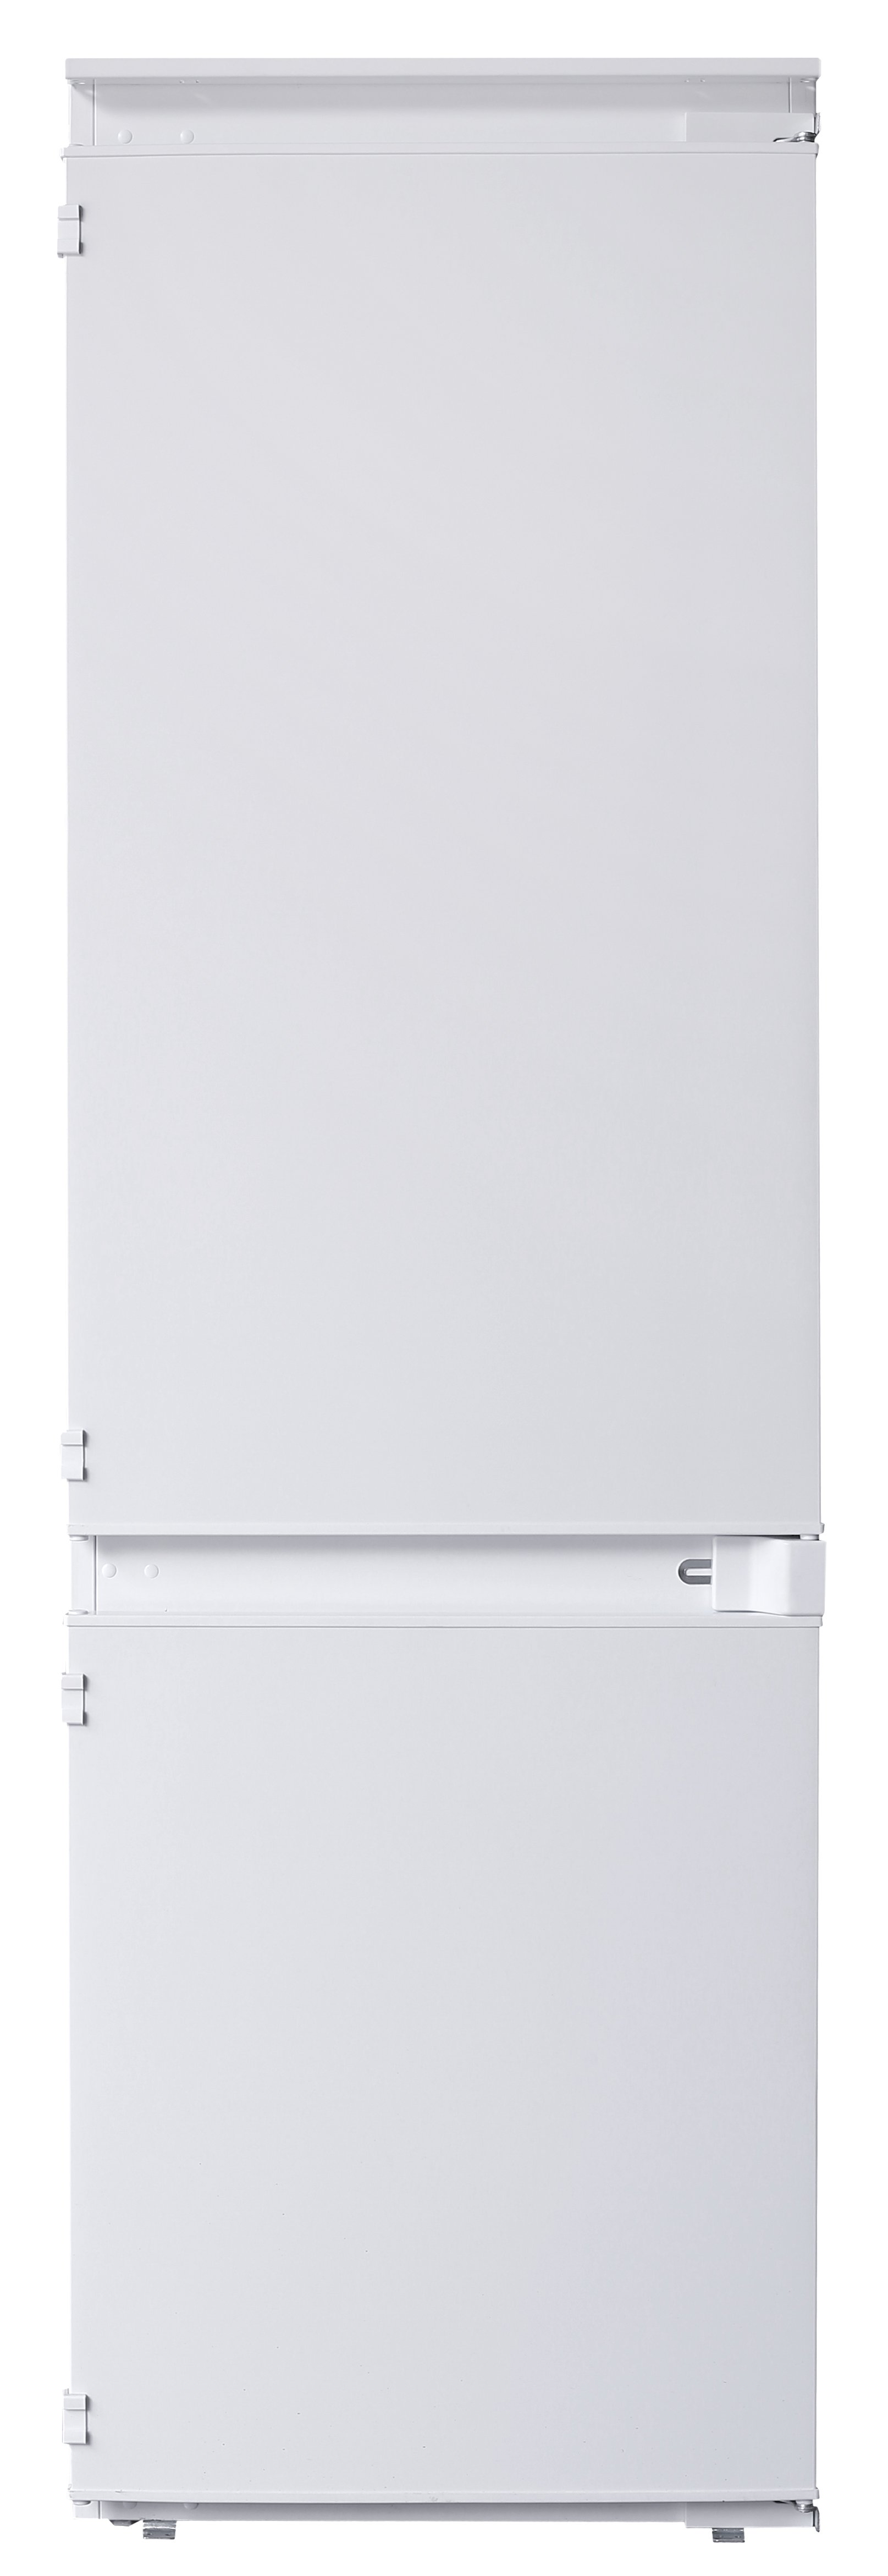 Russell Hobbs RHBI7030FF55-177 Integrated Fridge Freezer Best Price, Cheapest Prices